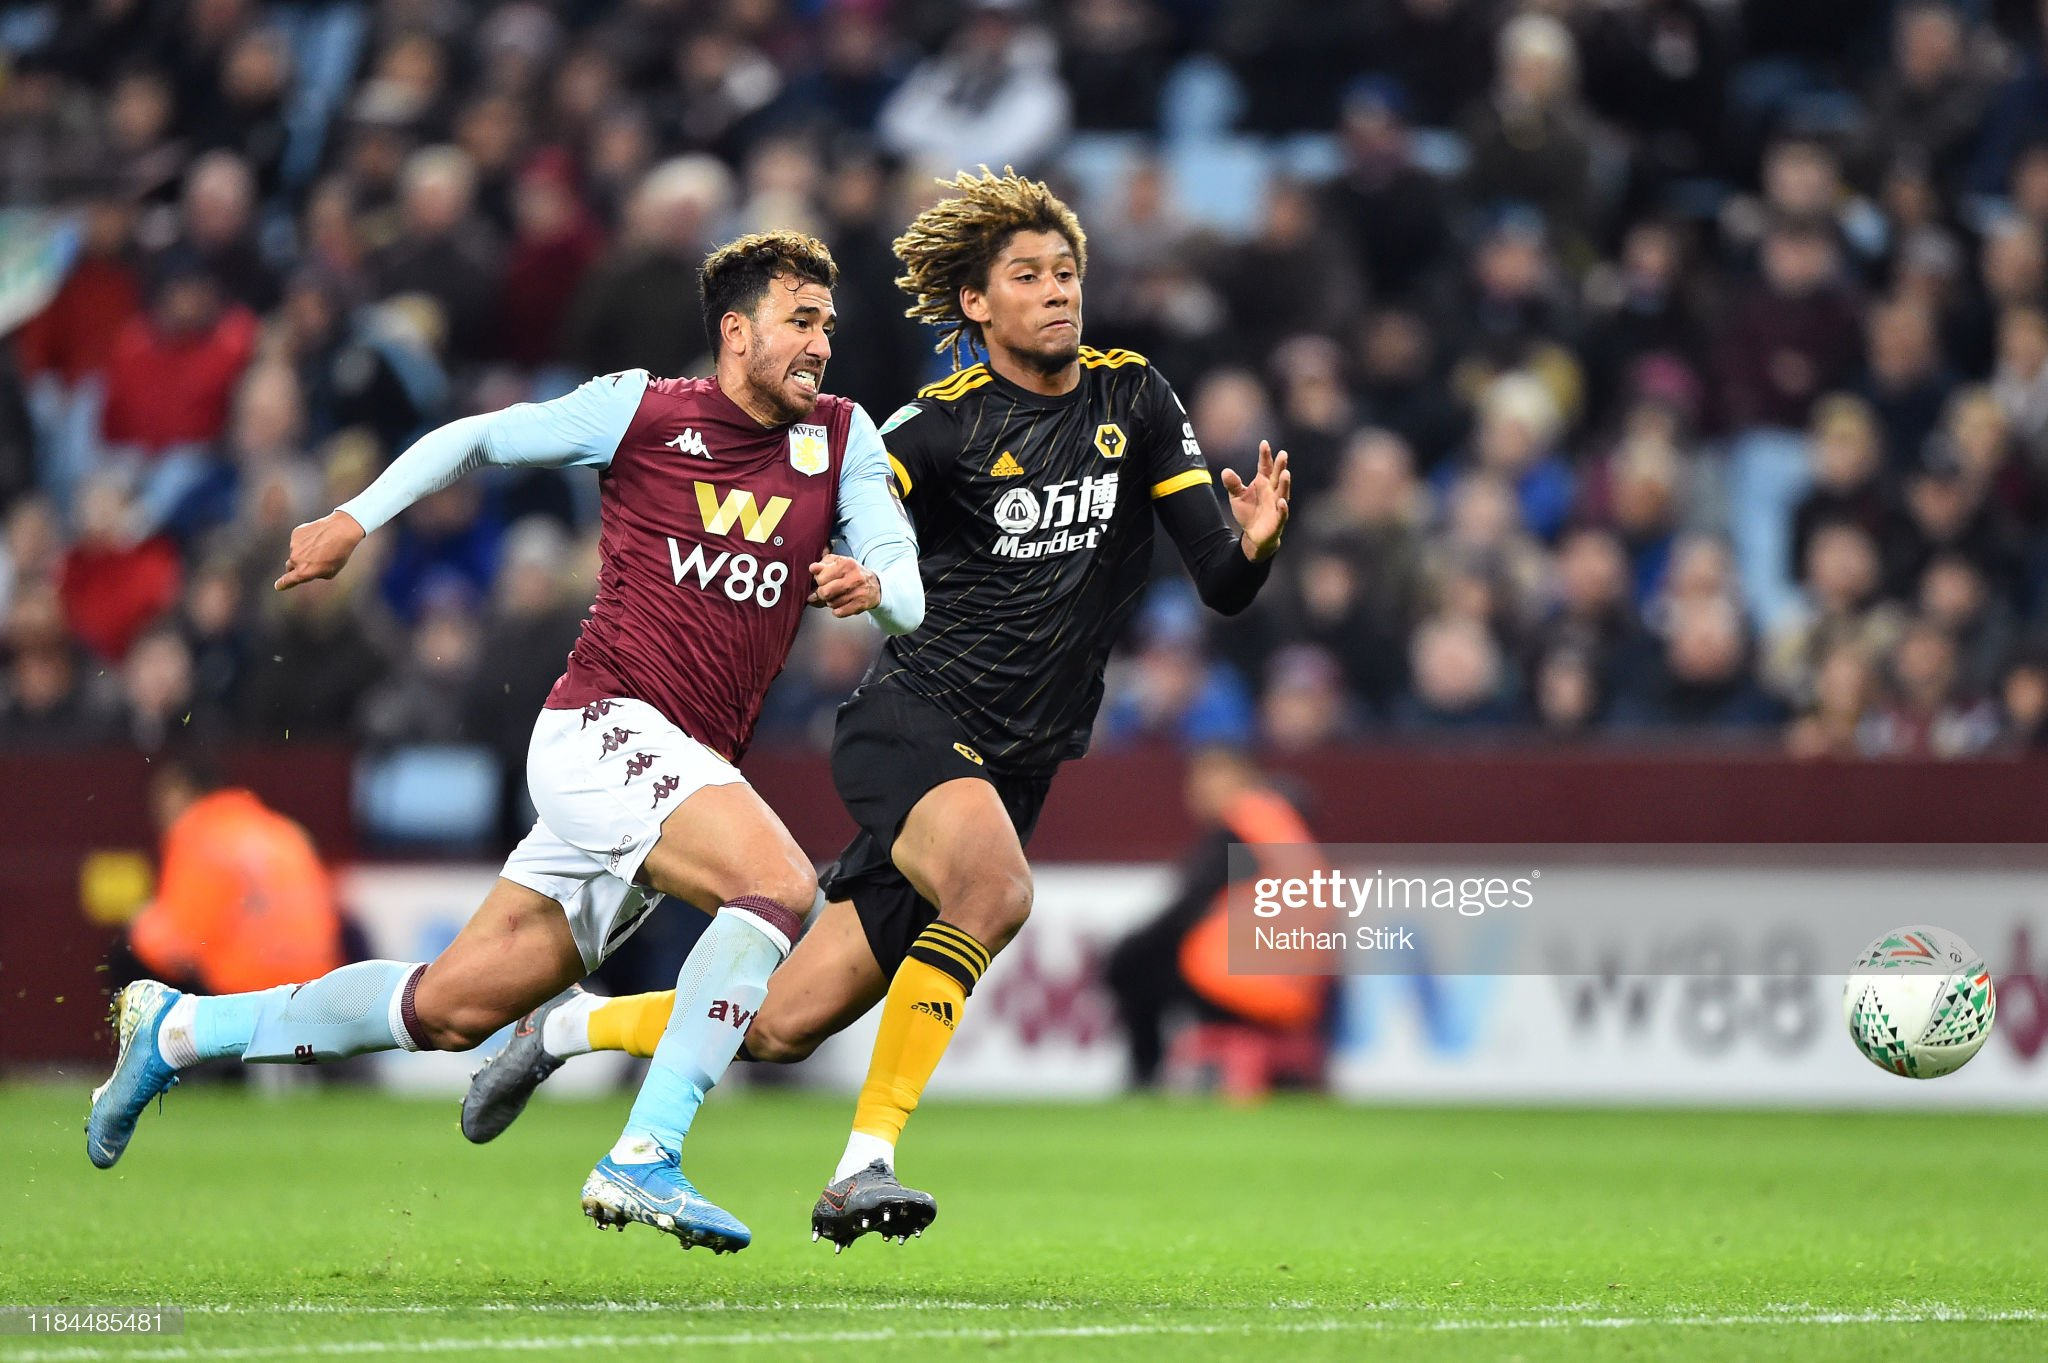 Wolves v Aston Villa preview, prediction and odds